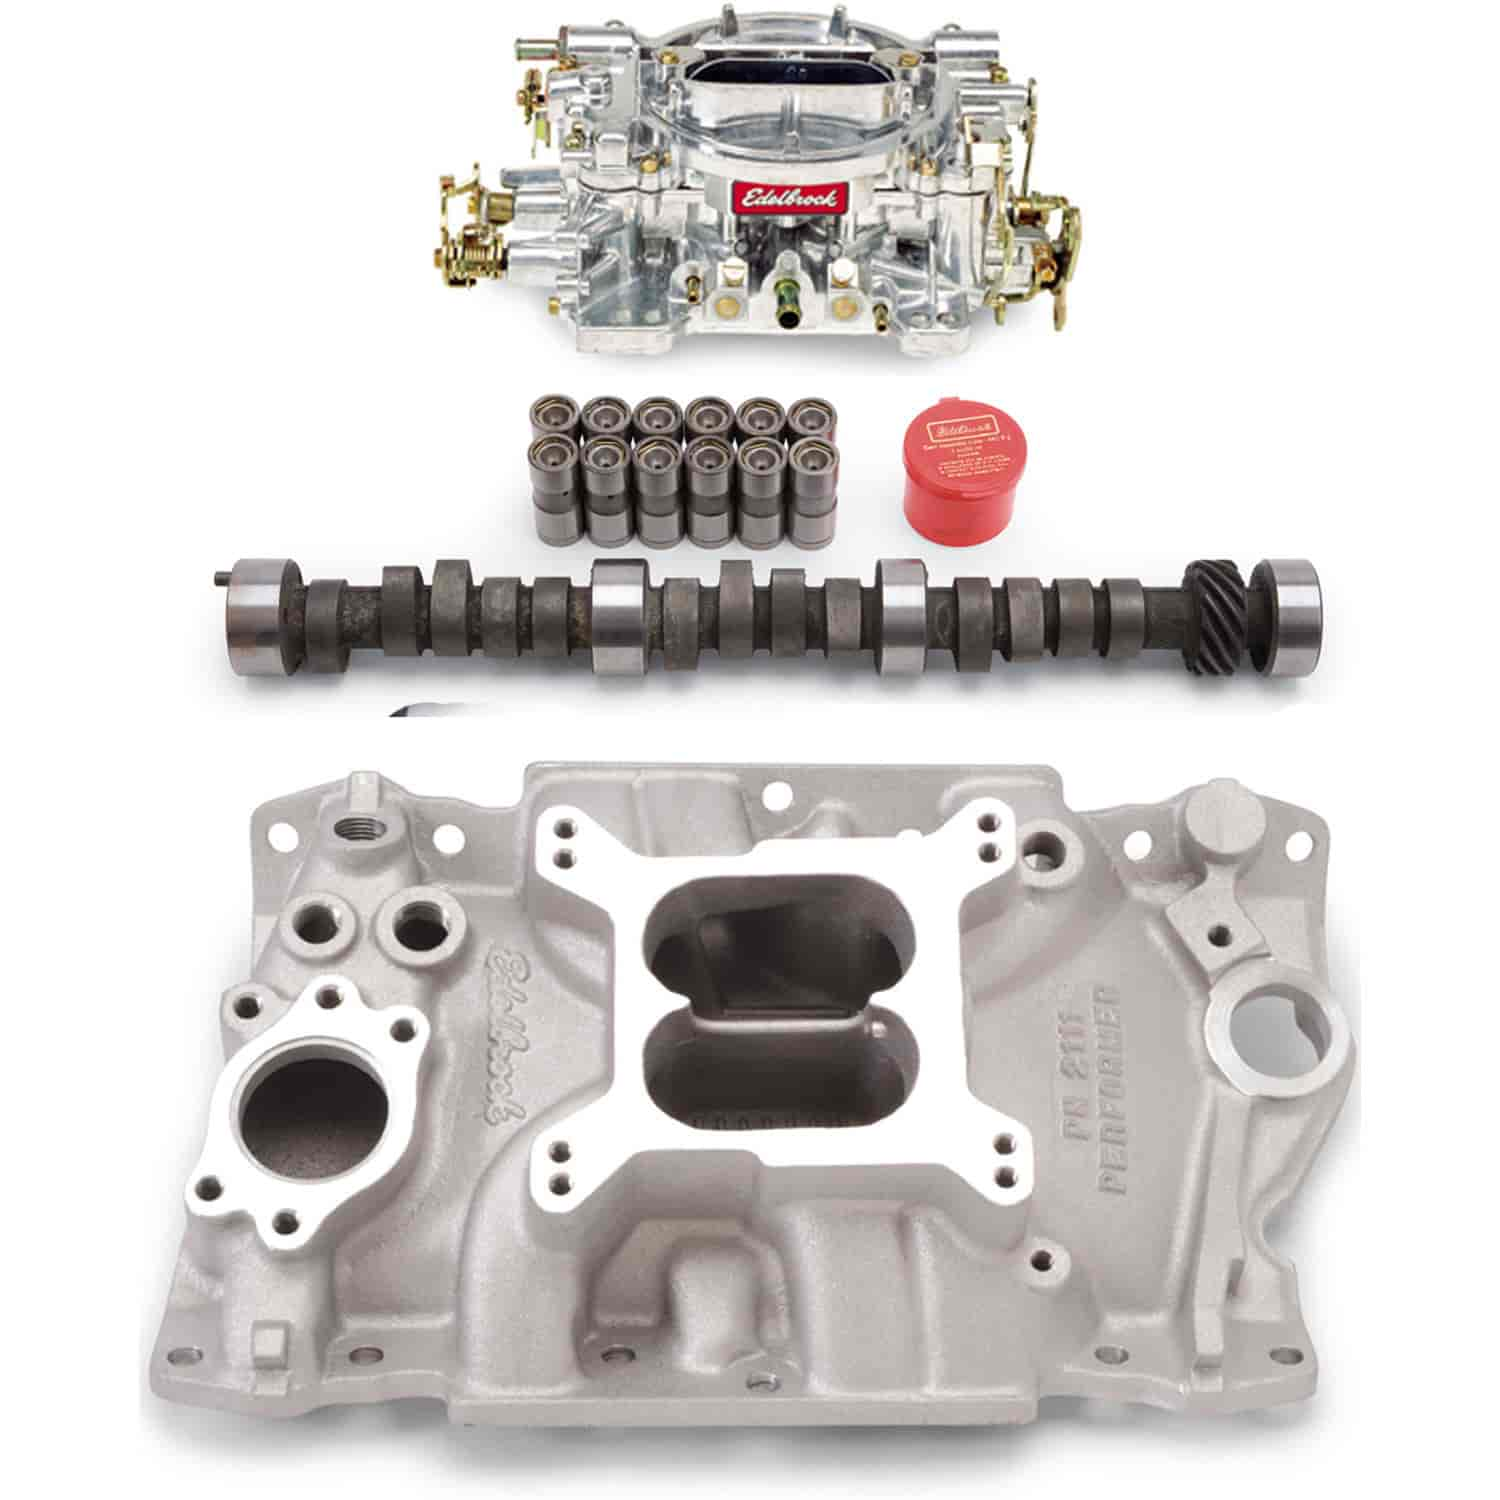 Edelbrock 2111PK - Edelbrock Performer Power Packages